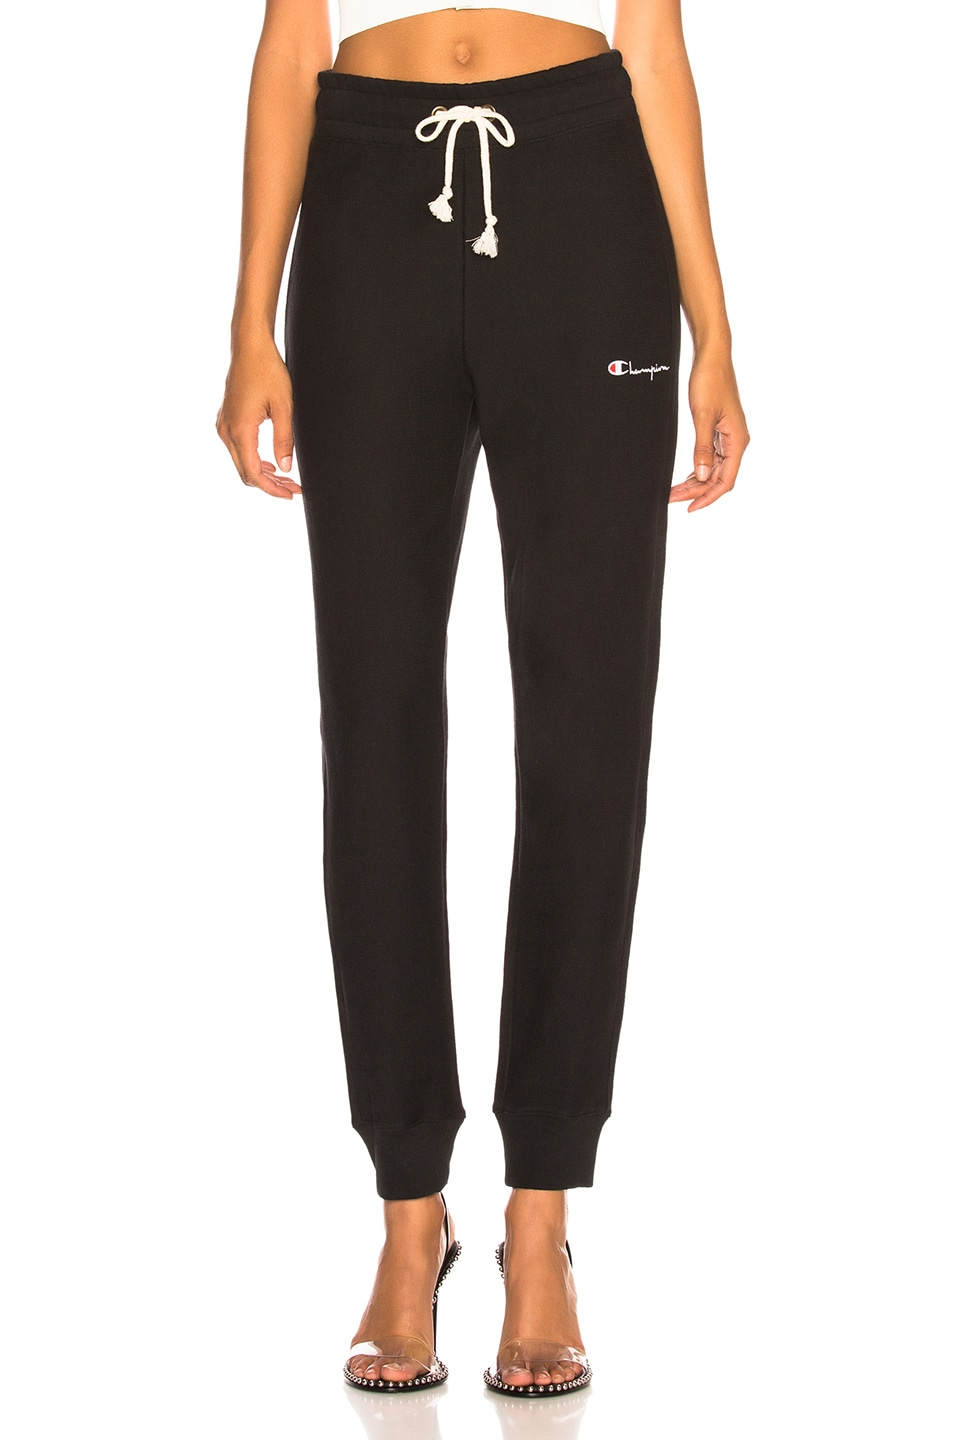 Image 1 of Champion Rib Cuff Pants in Black